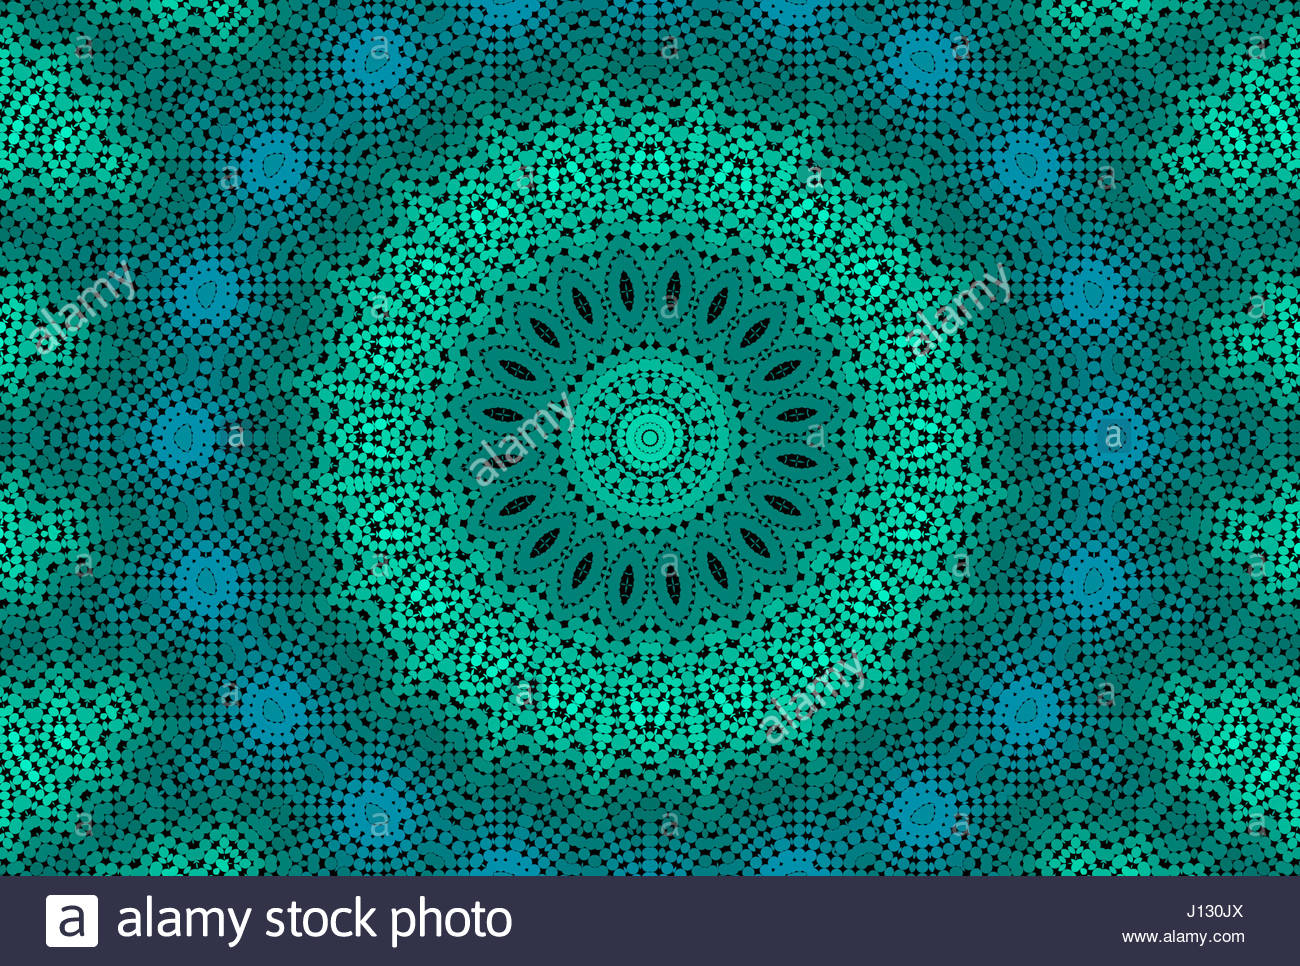 Abstract emerald background with radial dotted pattern Stock Photo 1300x966